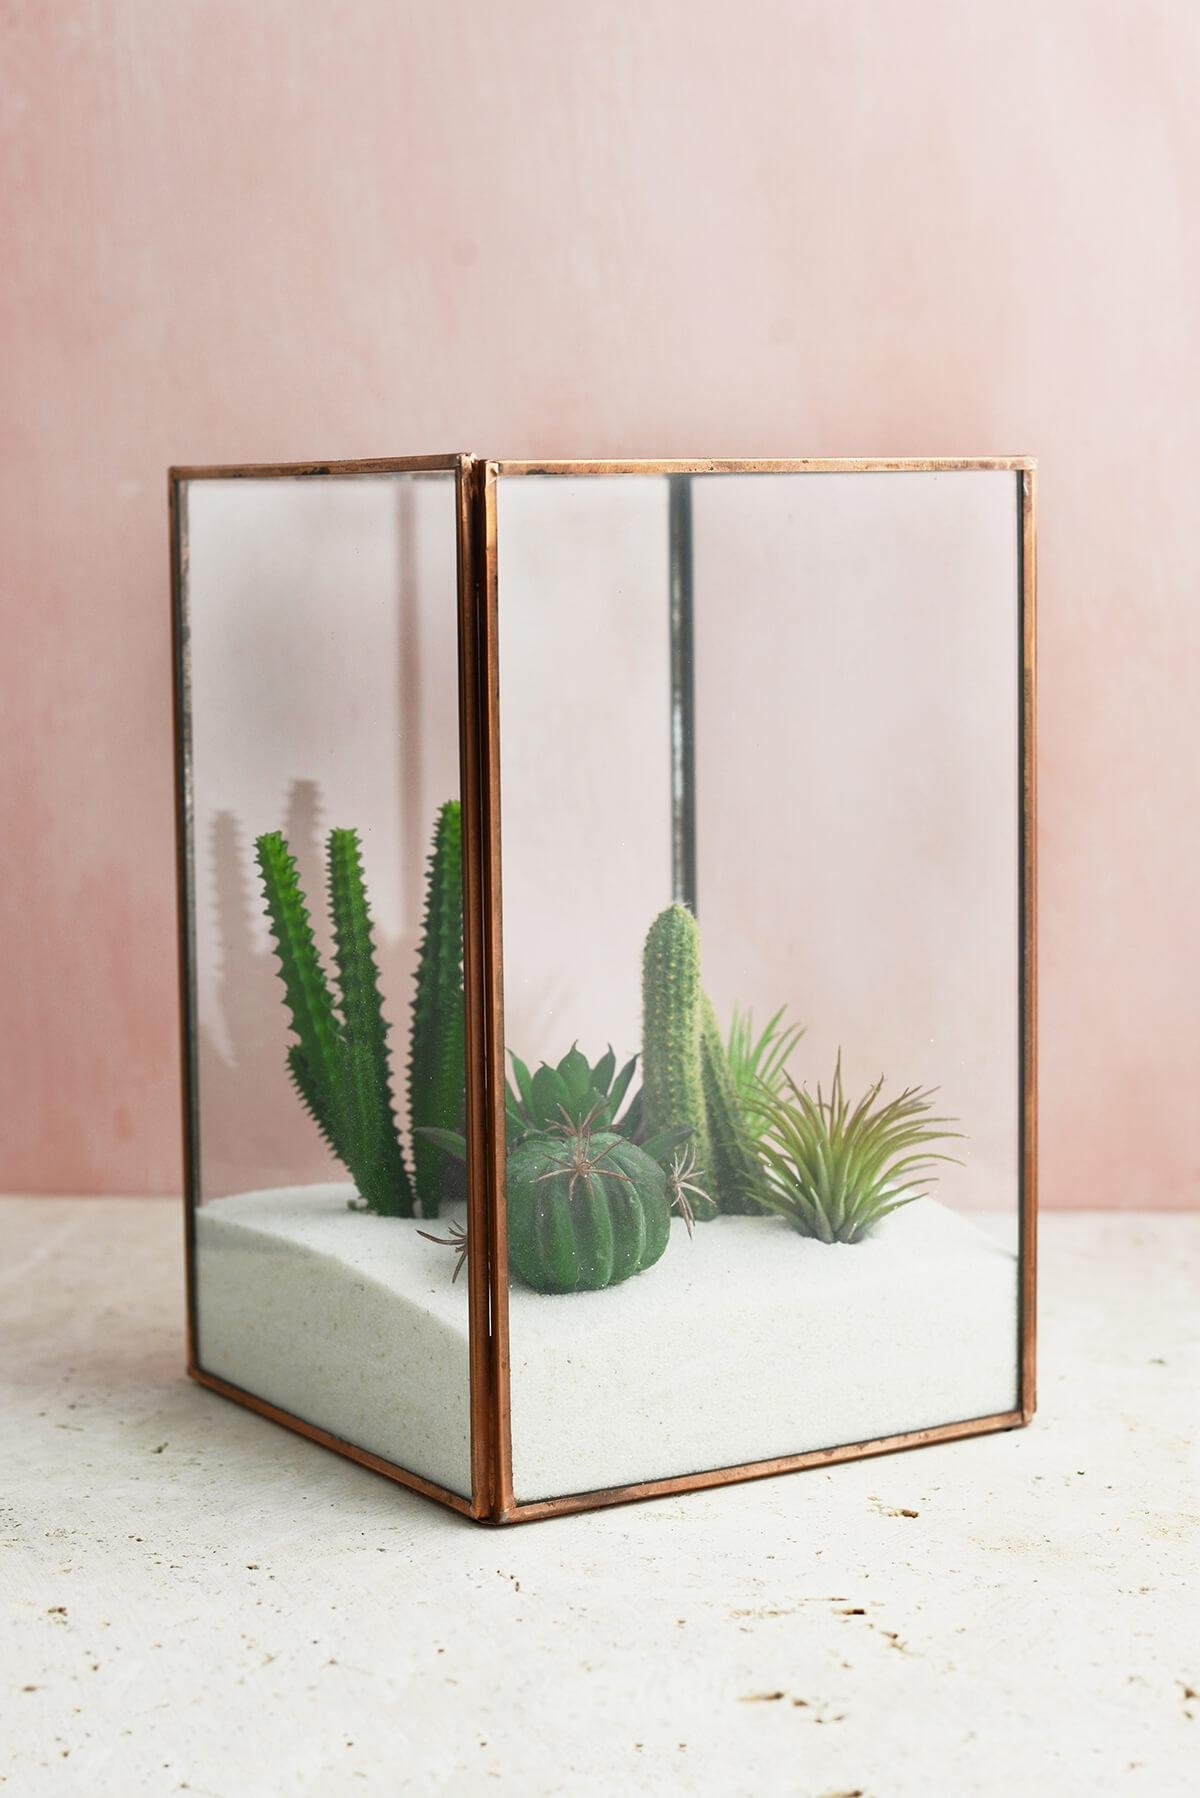 Richland Glass Terrarium Display Case Copper Large Set of 6